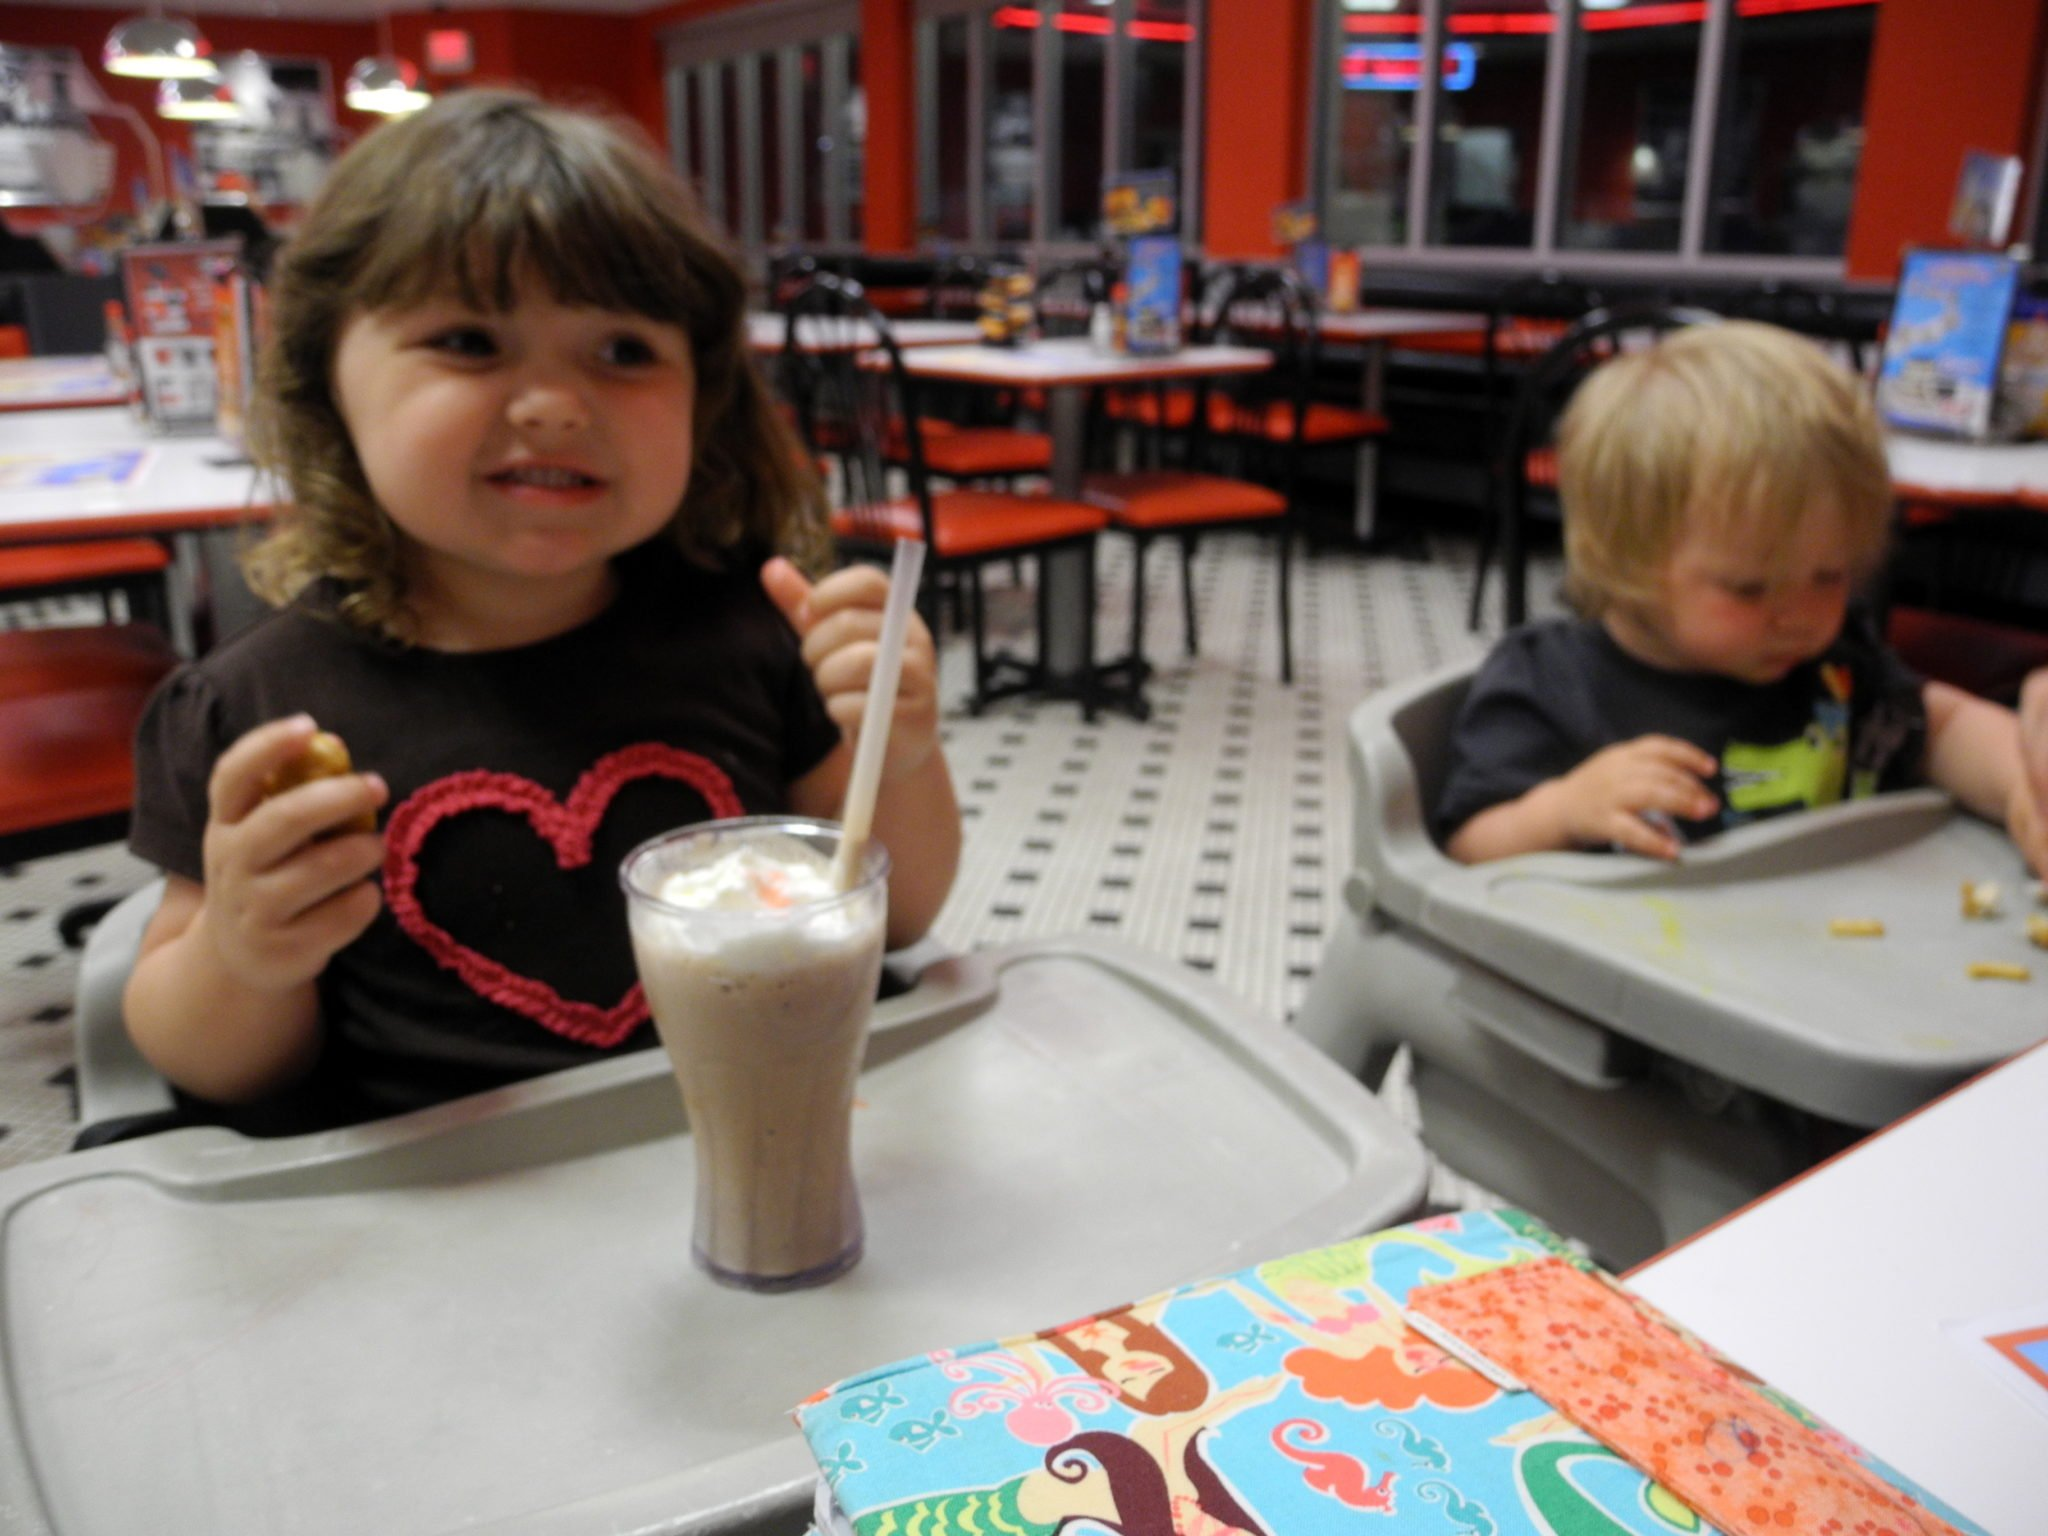 Steak n Shake hours of operation in Naples, FL. Explore store hours and avoid showing up at closed places, even late at night or on a Sunday.